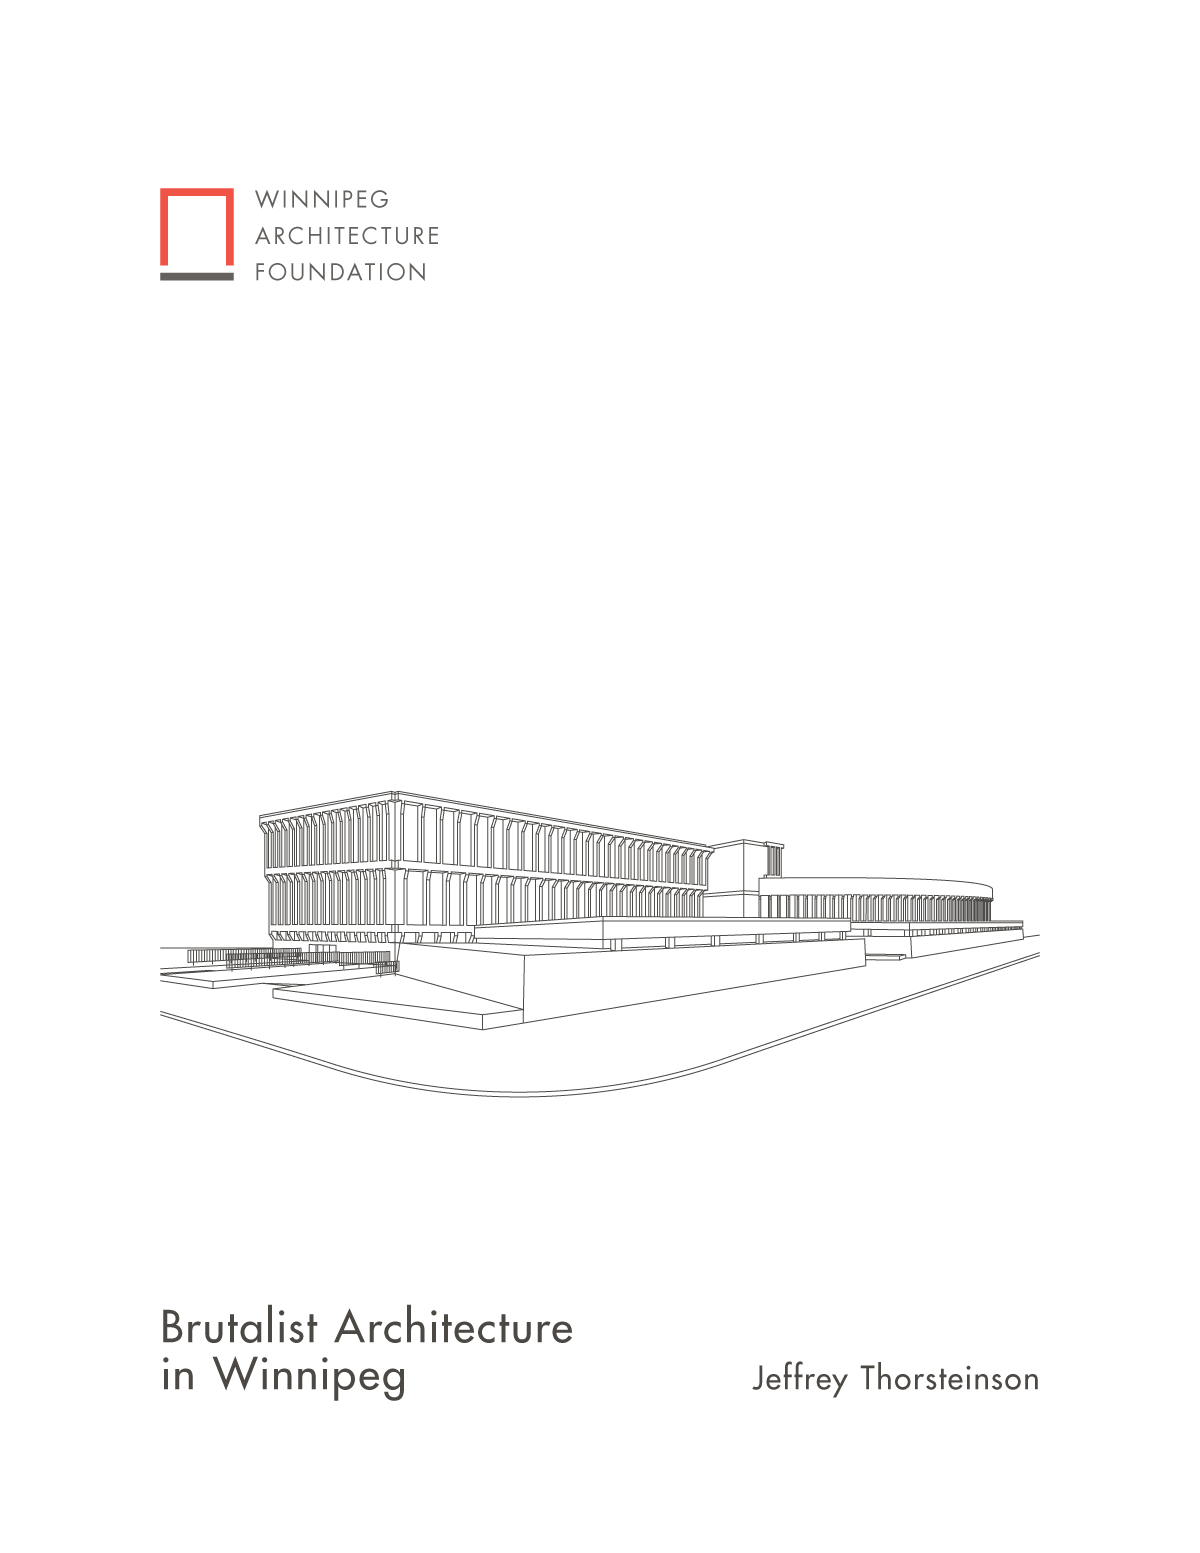 Brutalist Architecture in Winnipeg (PDF version)